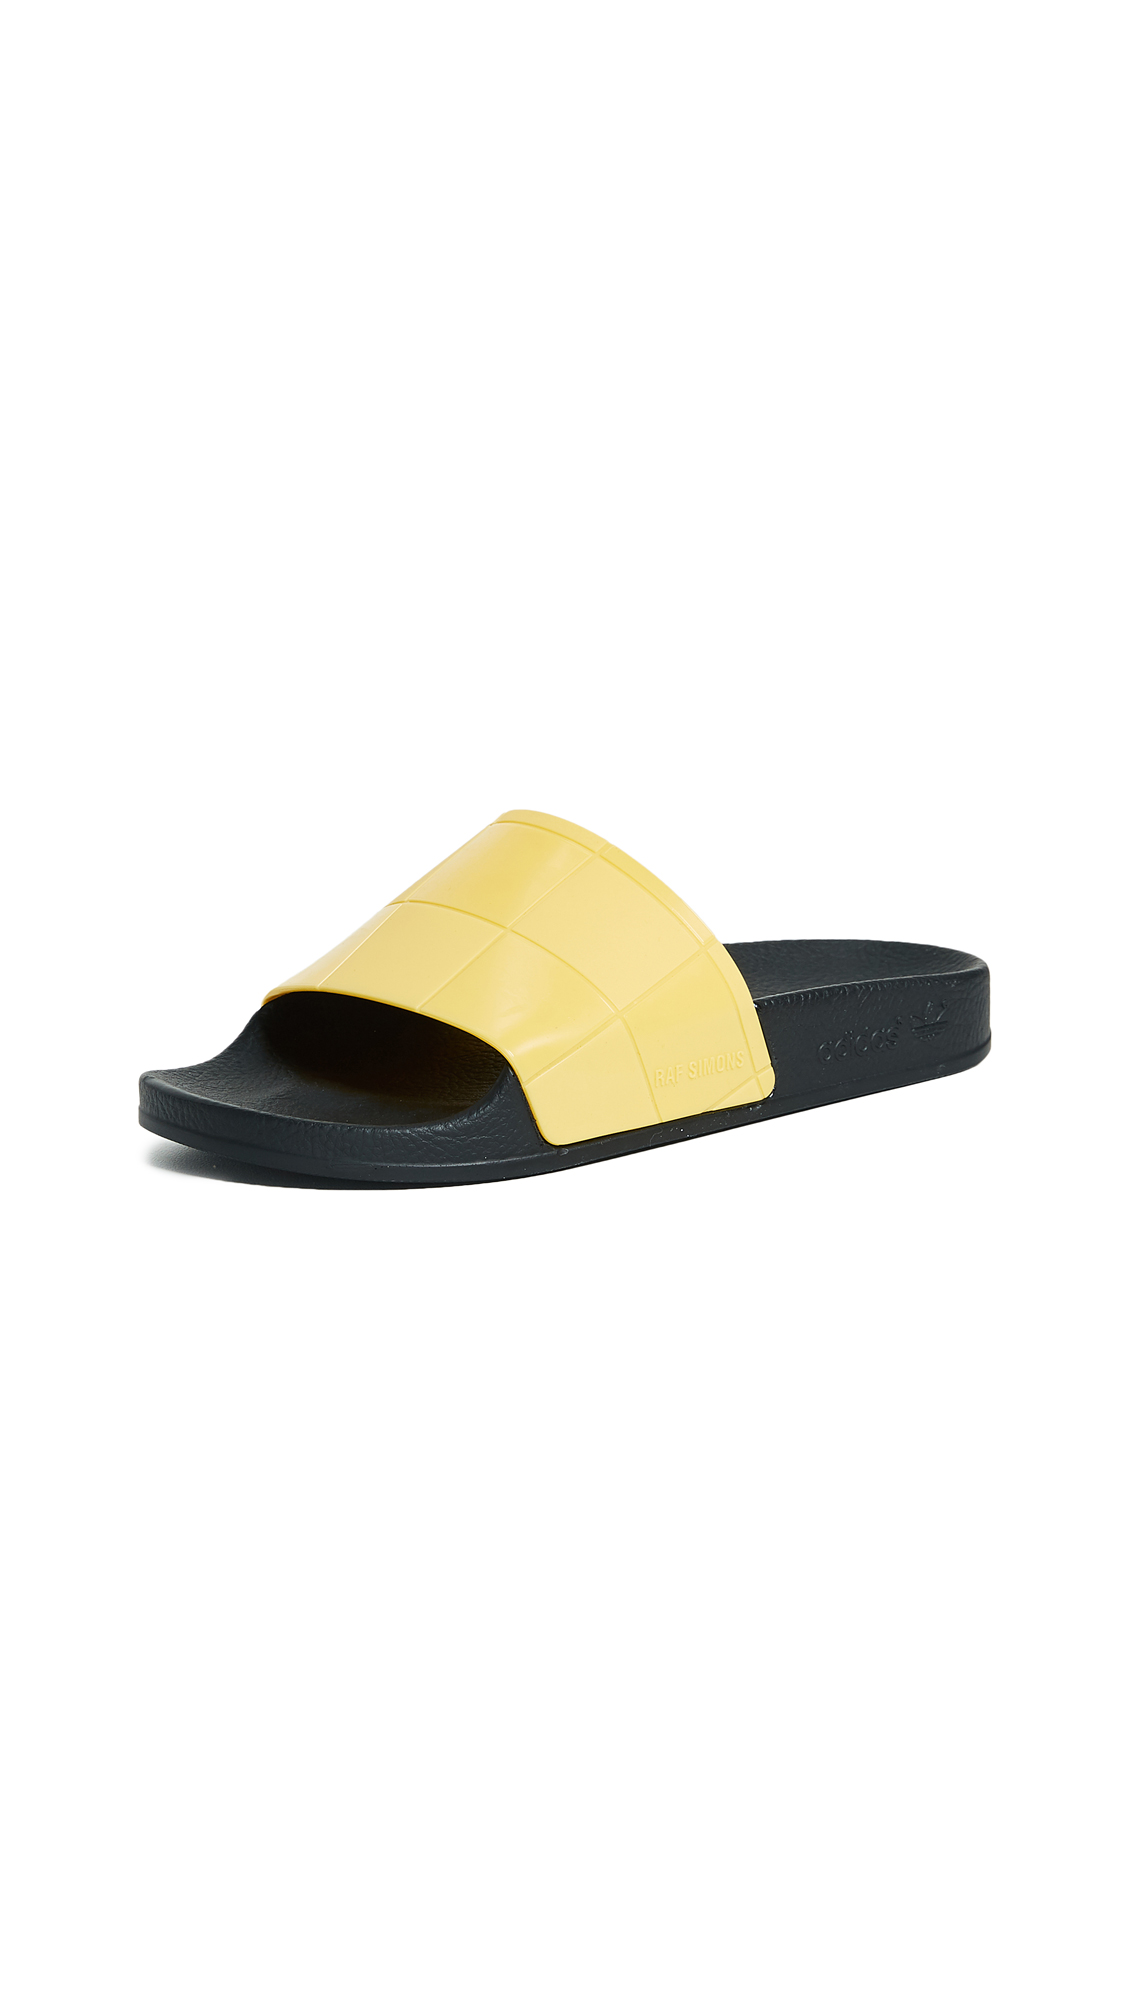 Adidas Raf Simmons Adilette Checkerboard Slides - Black/Super Lemon